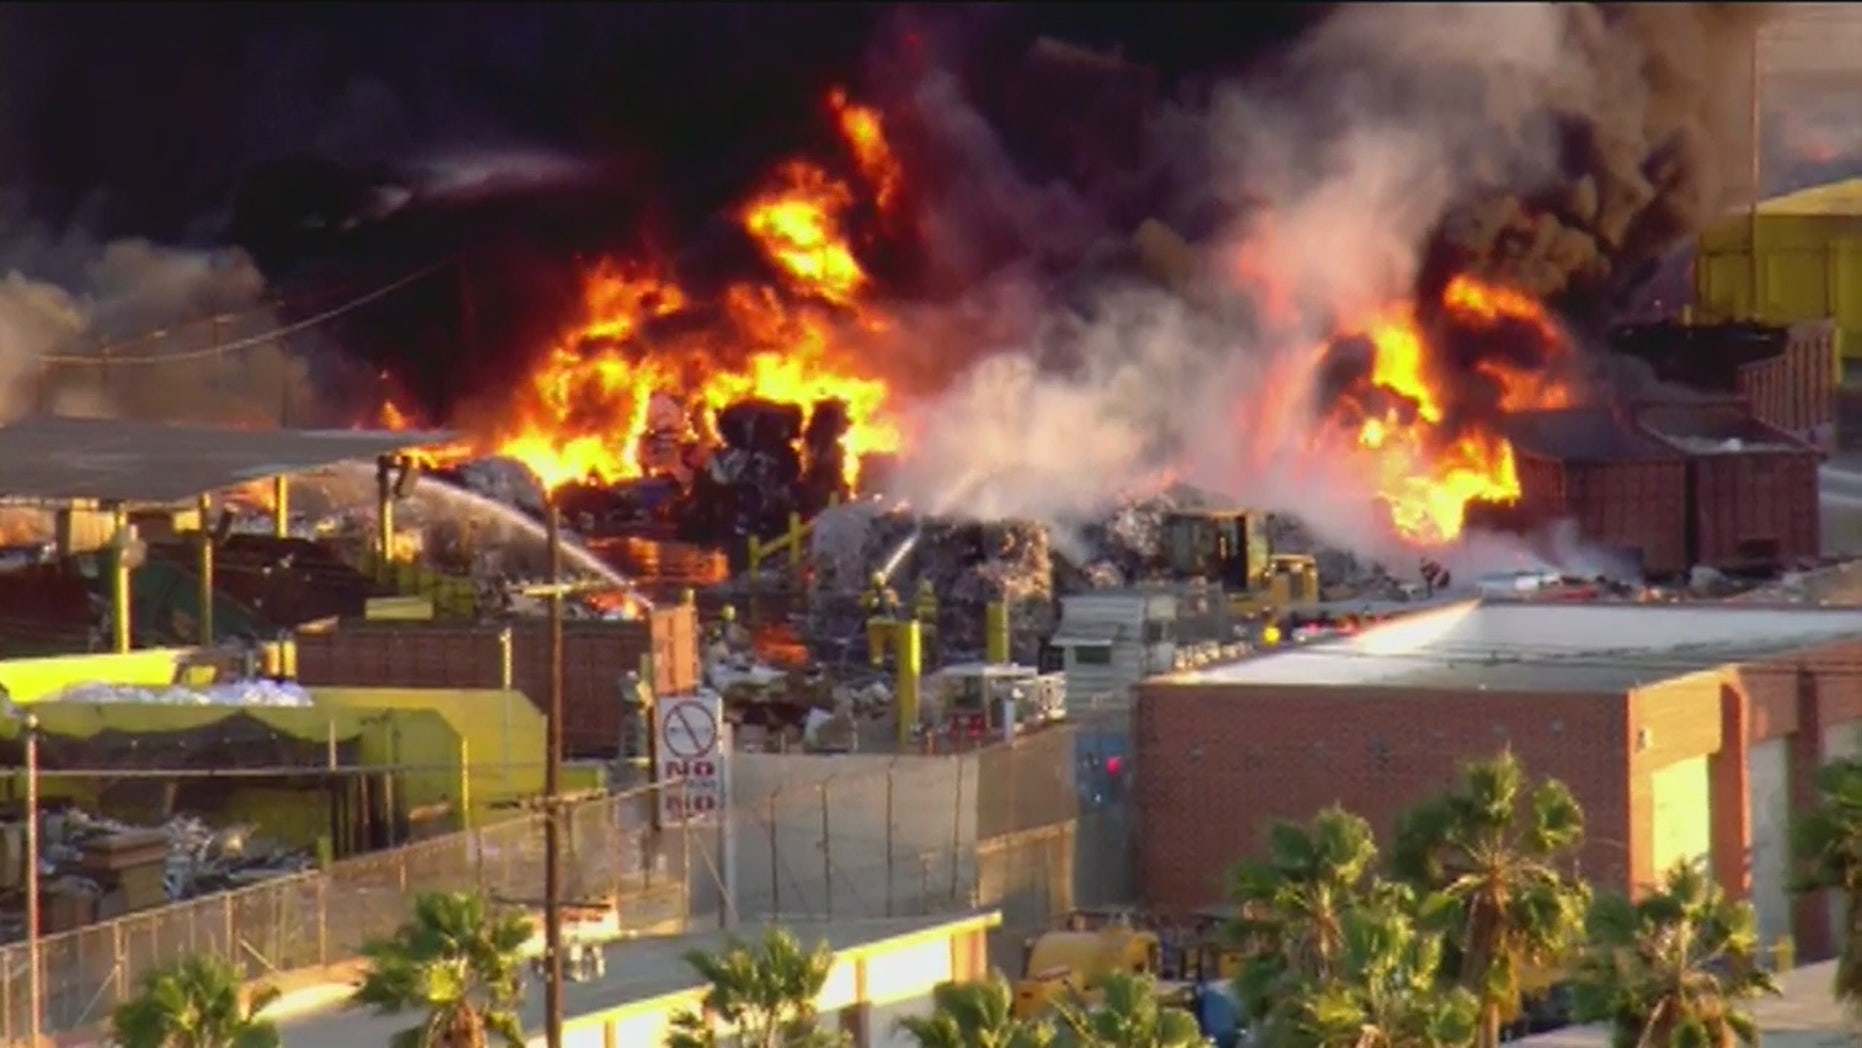 A fire at a recycling plant in South Los Angeles. (Fox 11)